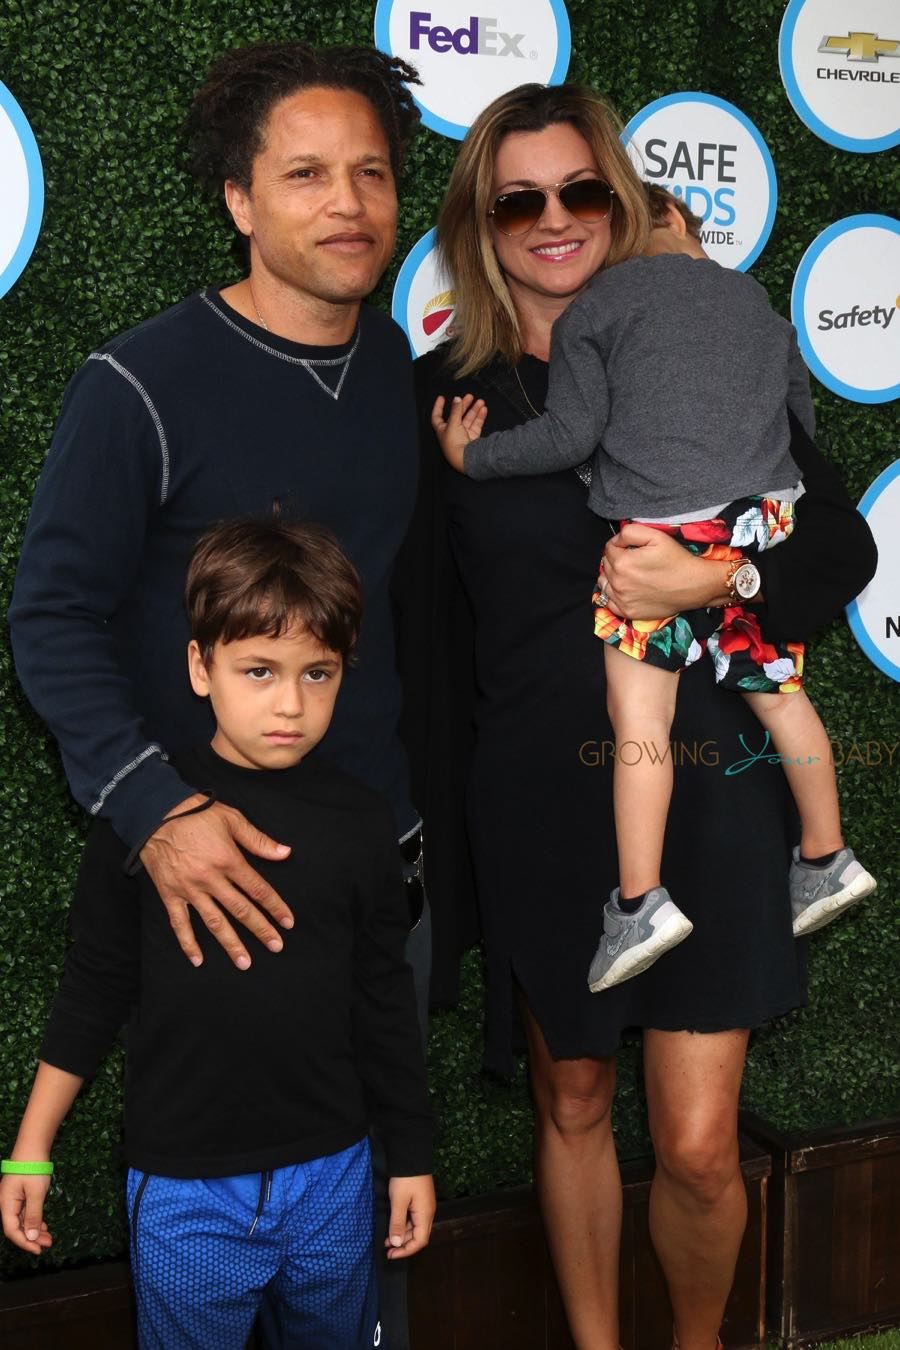 Cobi Jones With Wife Kim Reese And Kids At Kids Safe Day